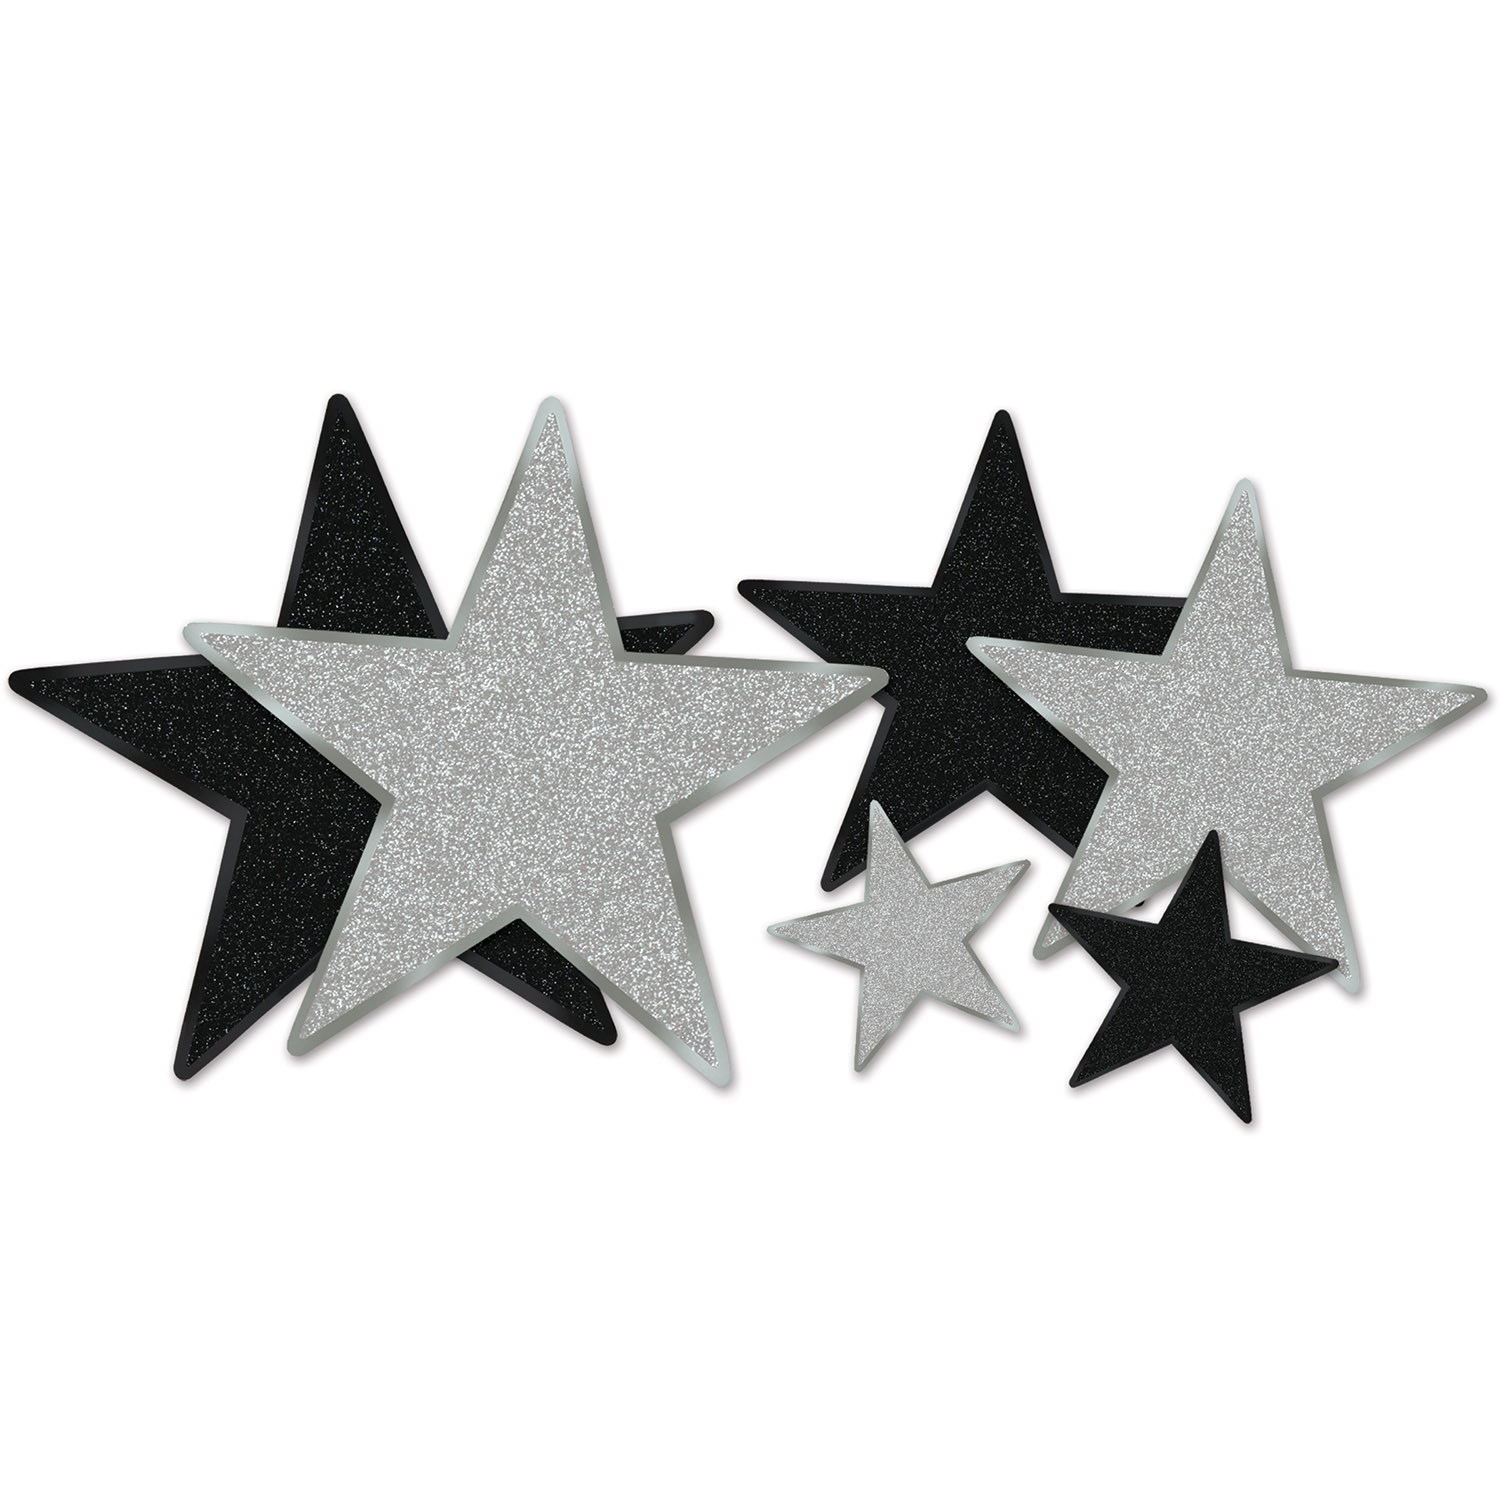 Glittered Star Cutouts (Pack of 72) silver, black, new years eve, stars, hollywood, decorations, wholesale, inexpensive, bulk